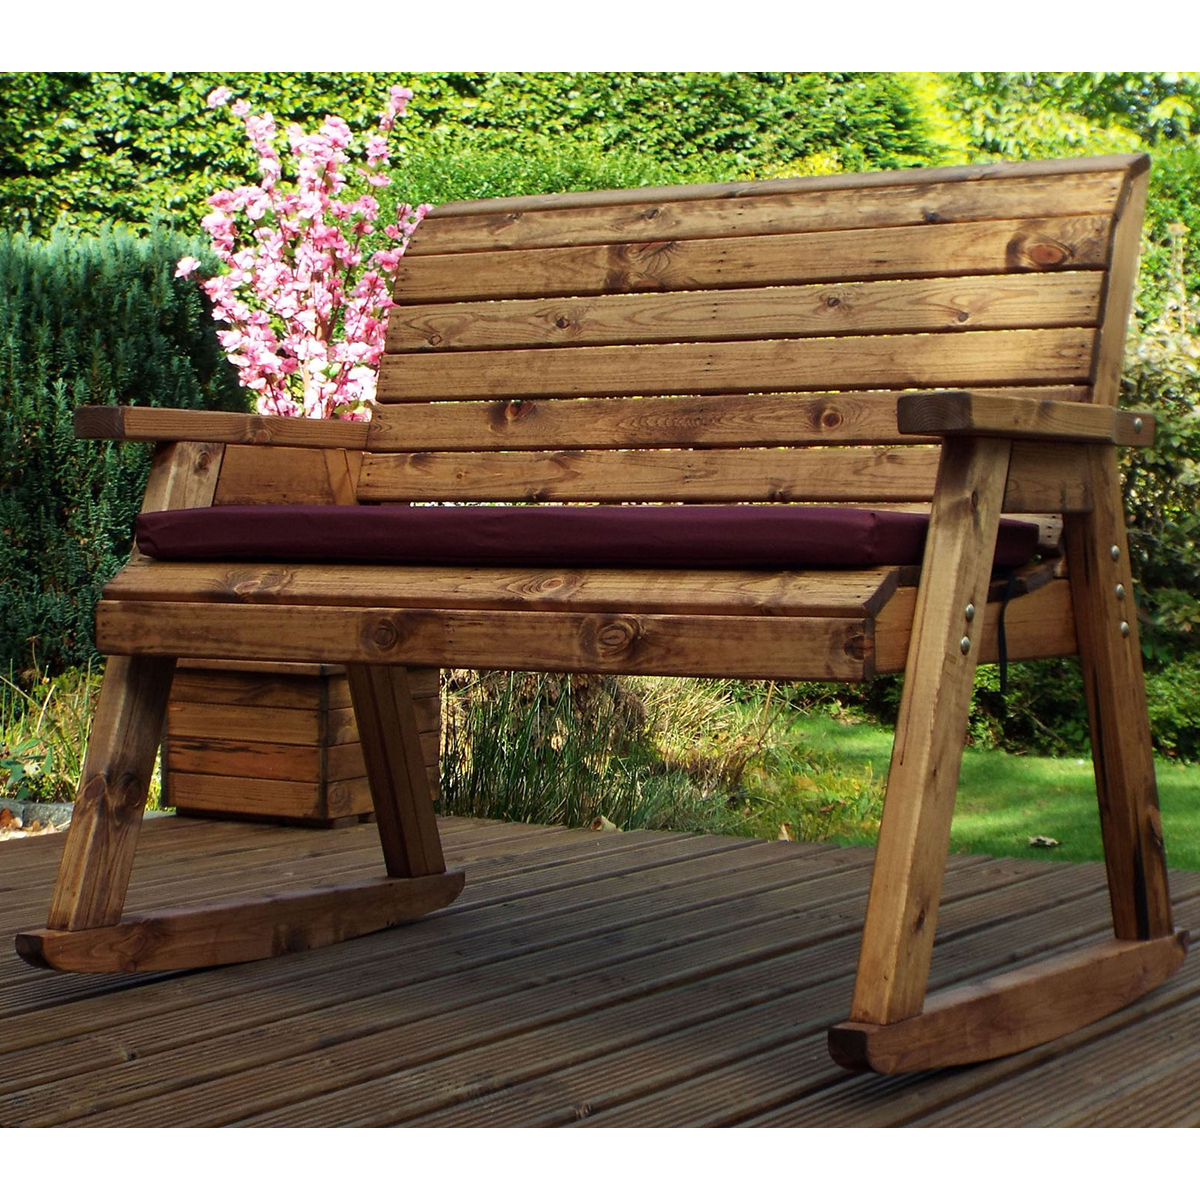 Charles Taylor Wooden Bench Rocker Regarding 2020 Bence Plastic Outdoor Garden Benches (View 4 of 25)